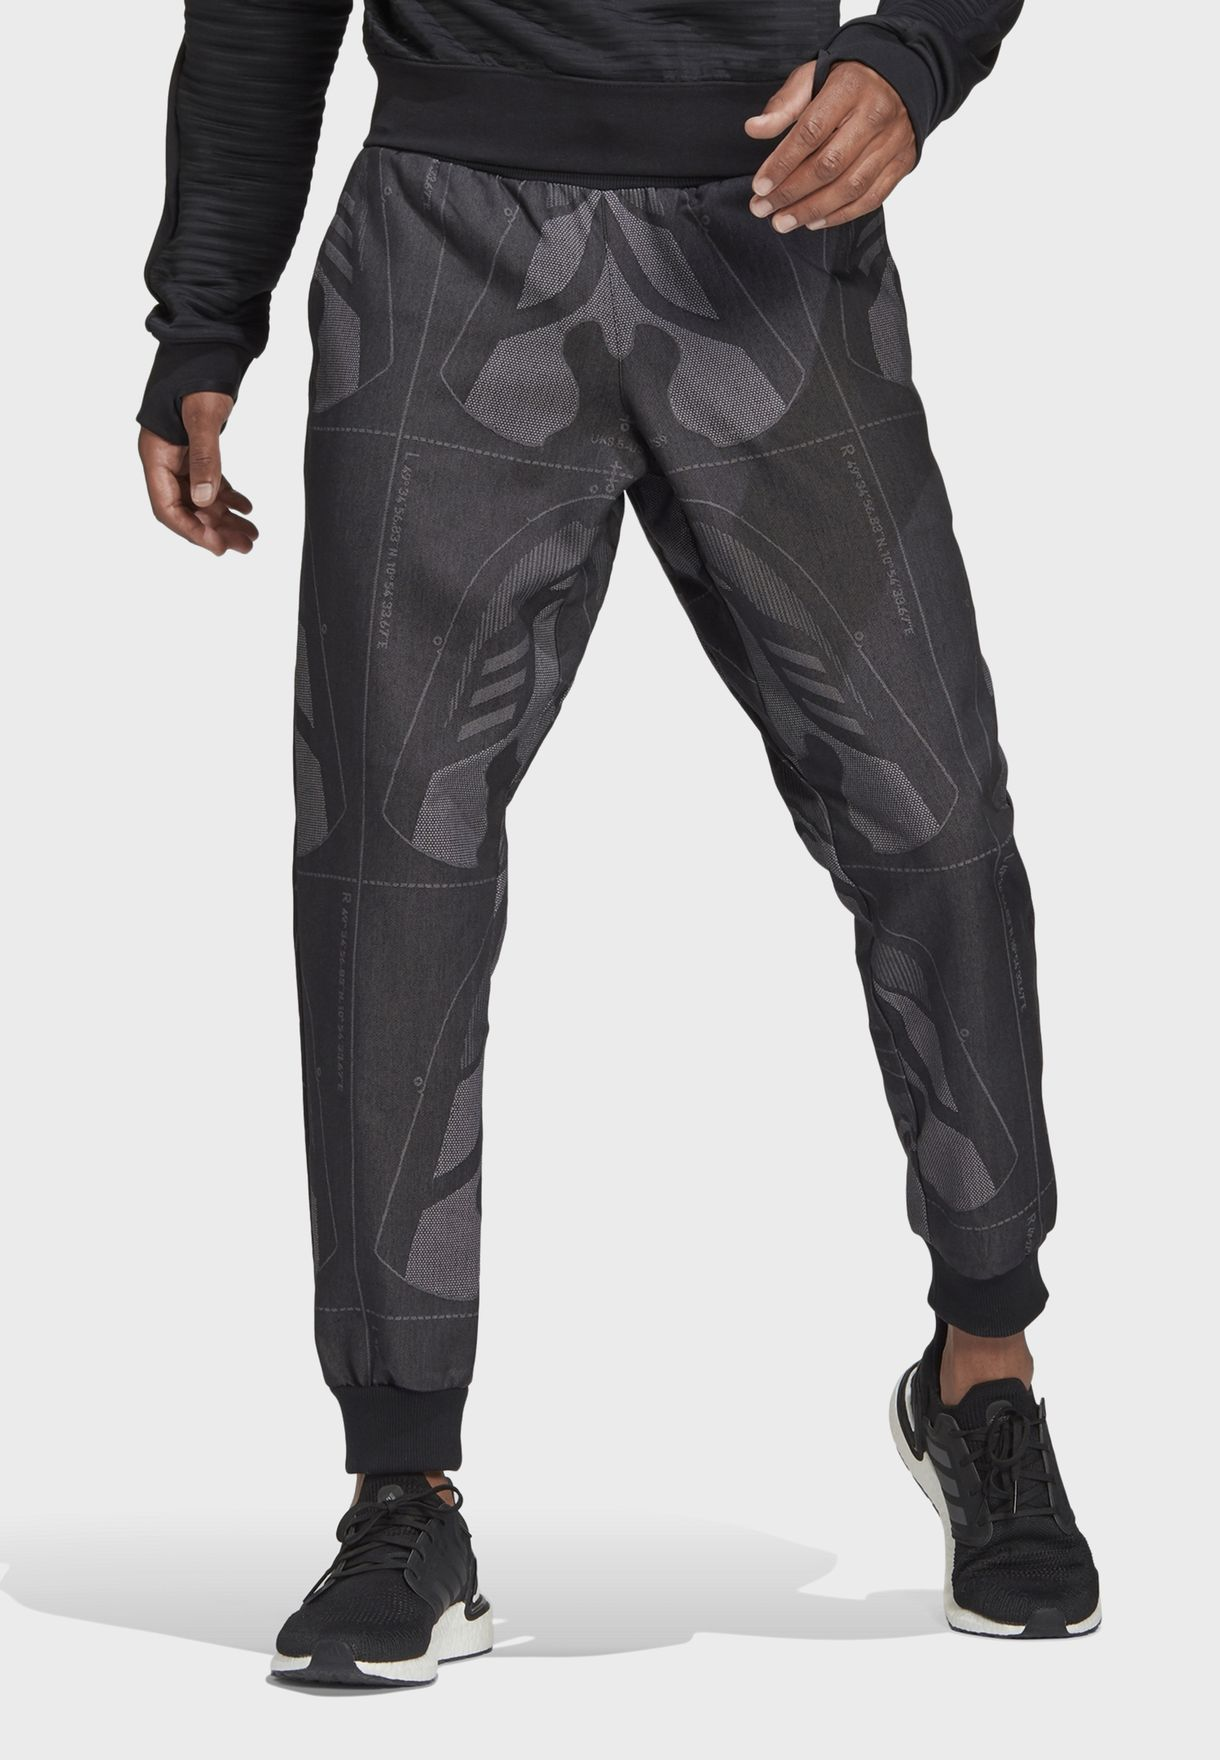 Jacquard Sweatpants